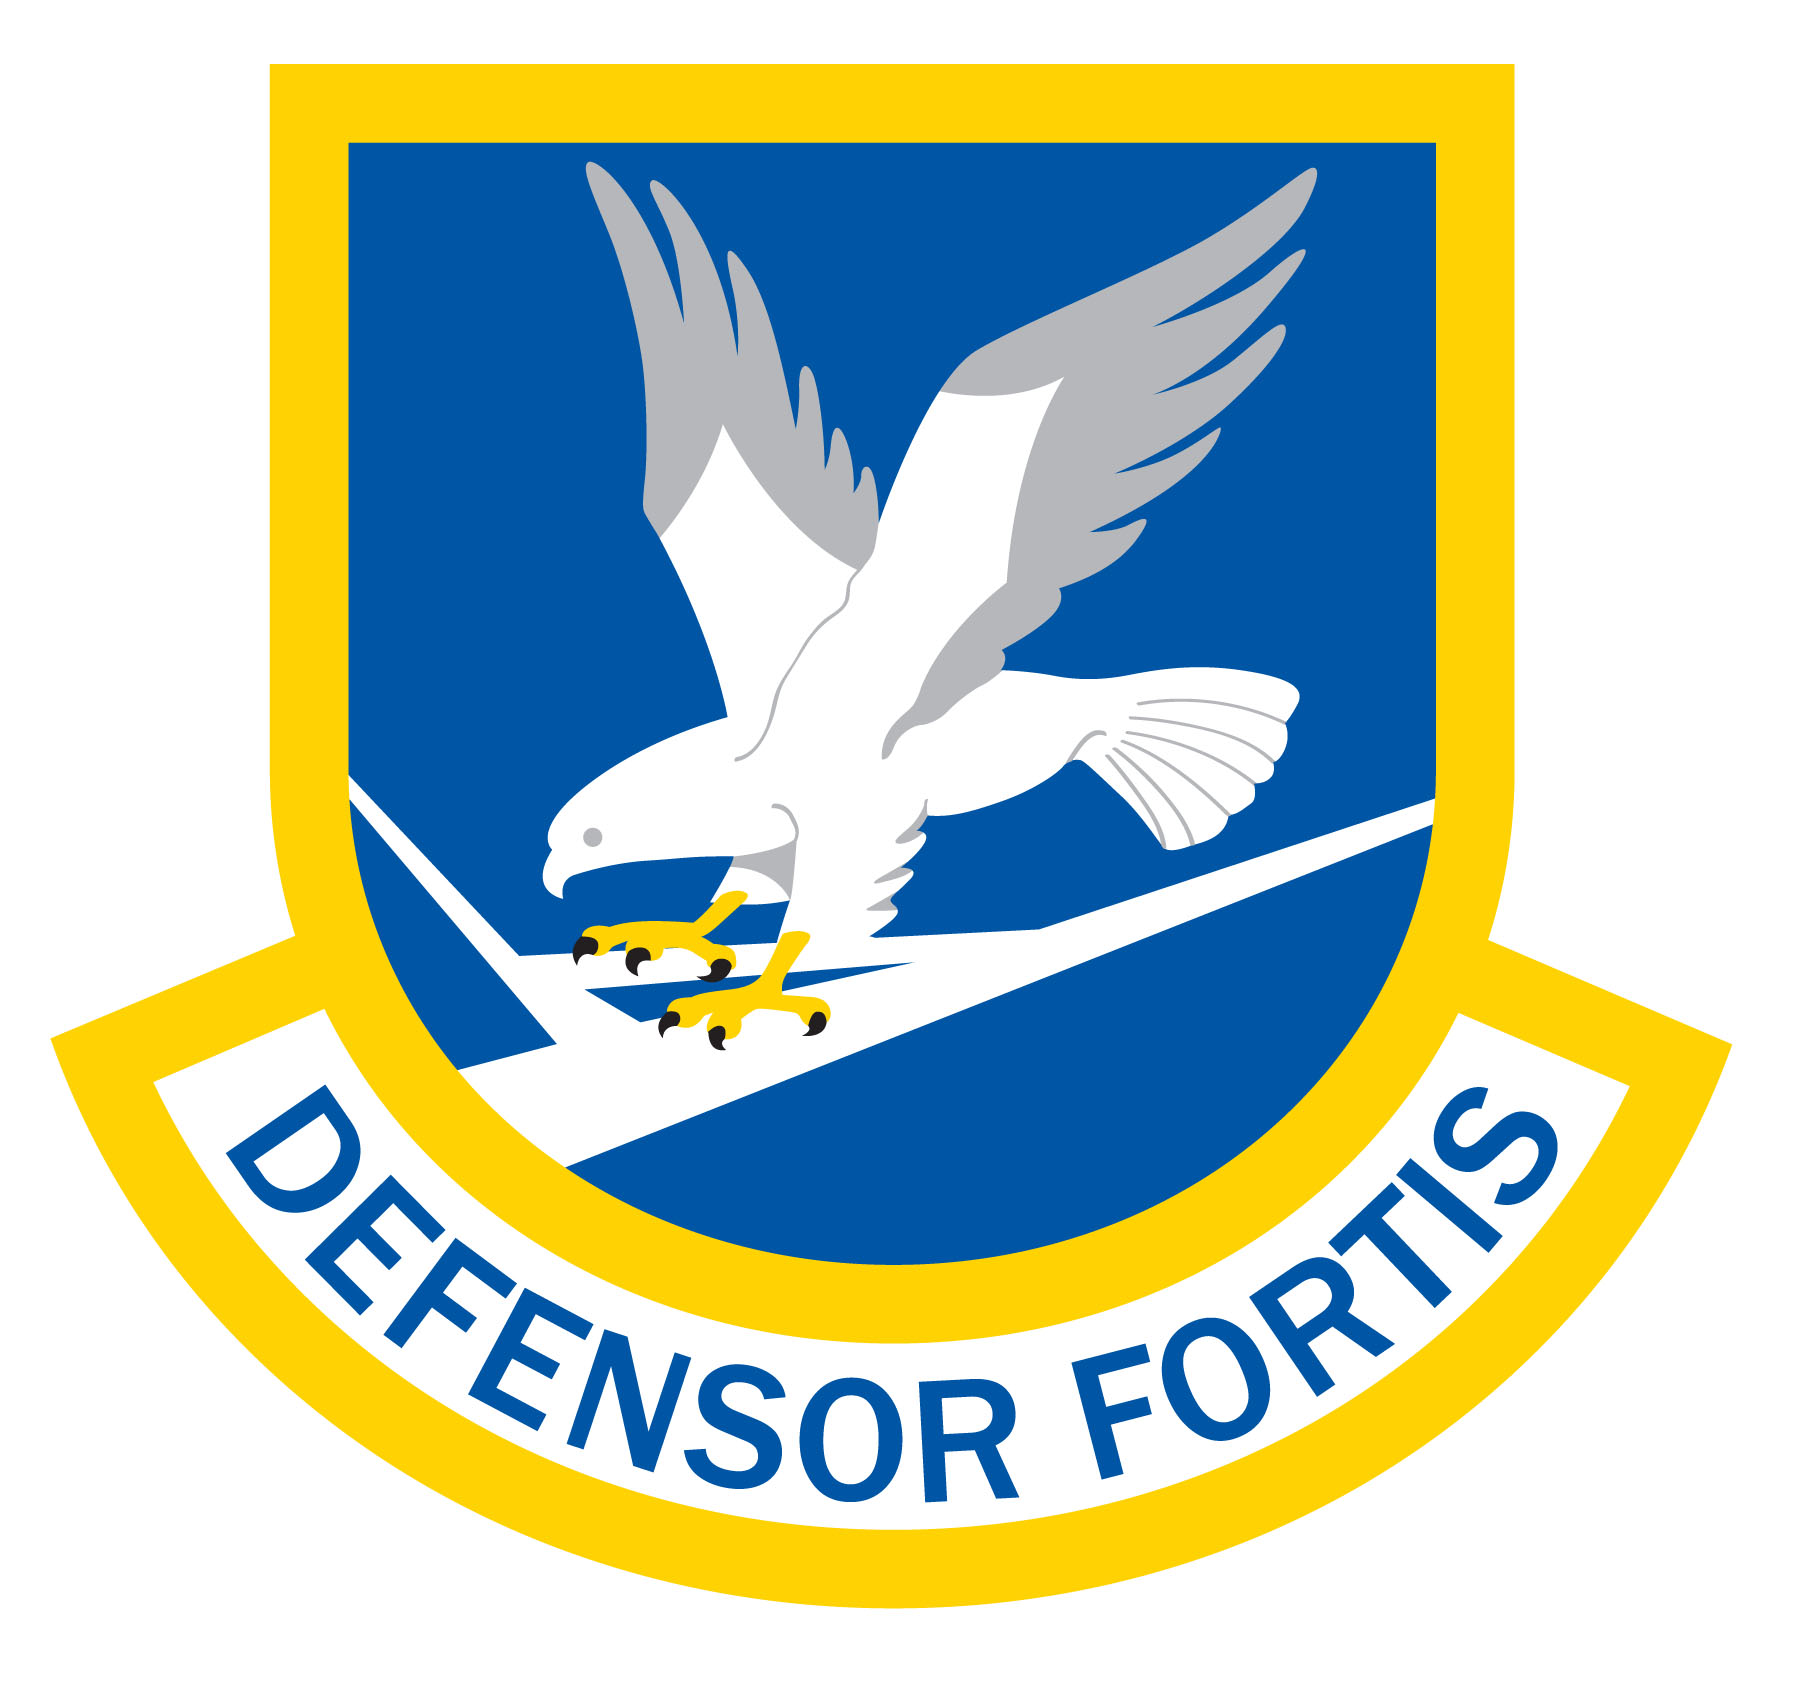 defensor fortis pictures to pin on pinterest thepinsta air force logo vector indian air force logo vector file